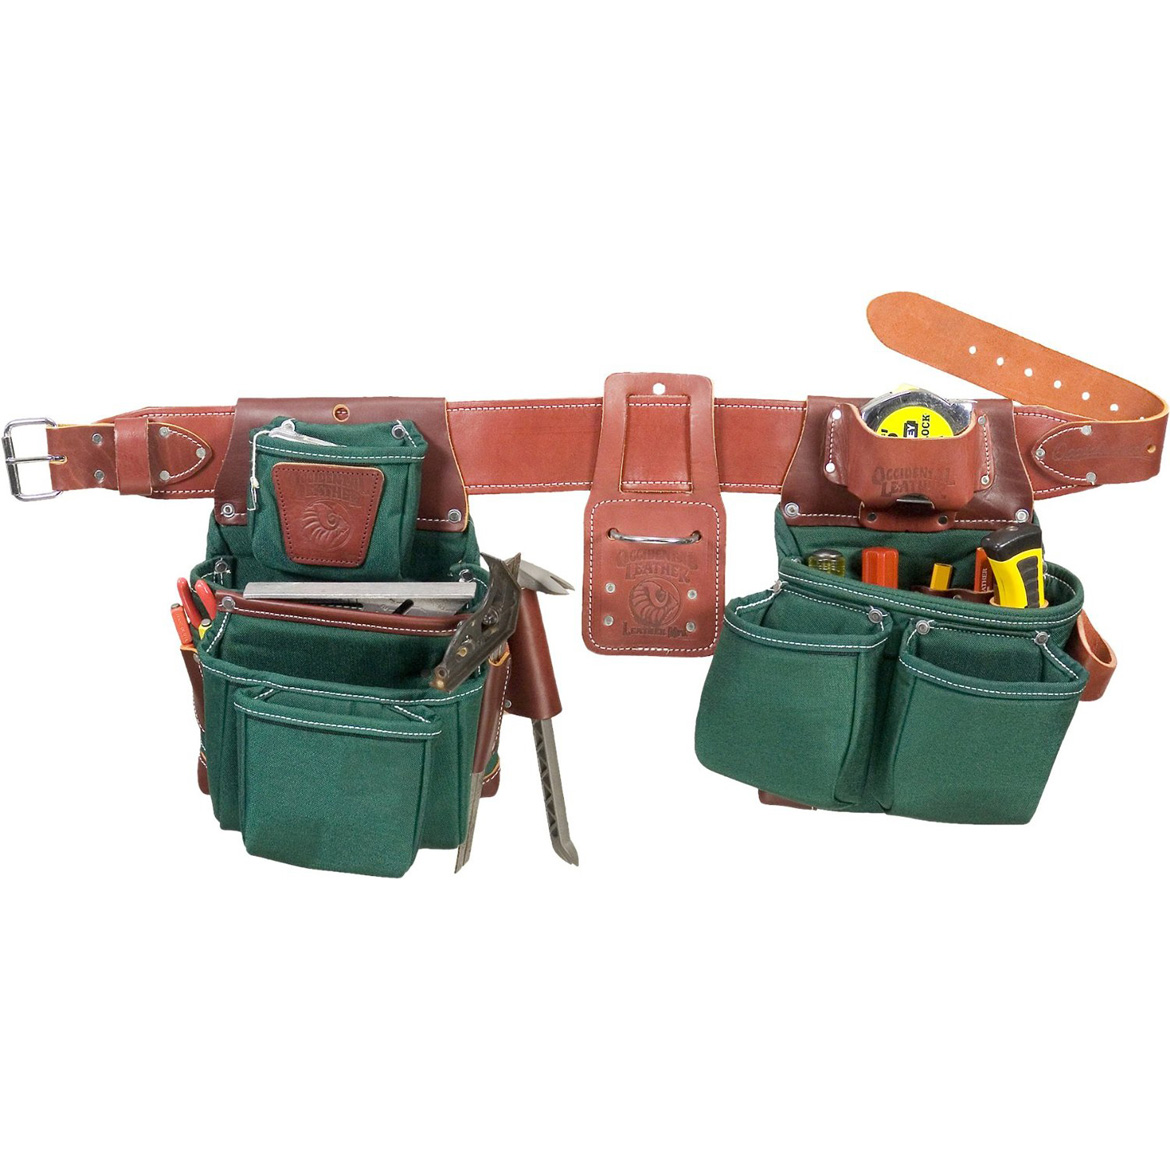 occidental leather 8089m oxylights framer framing tool bag